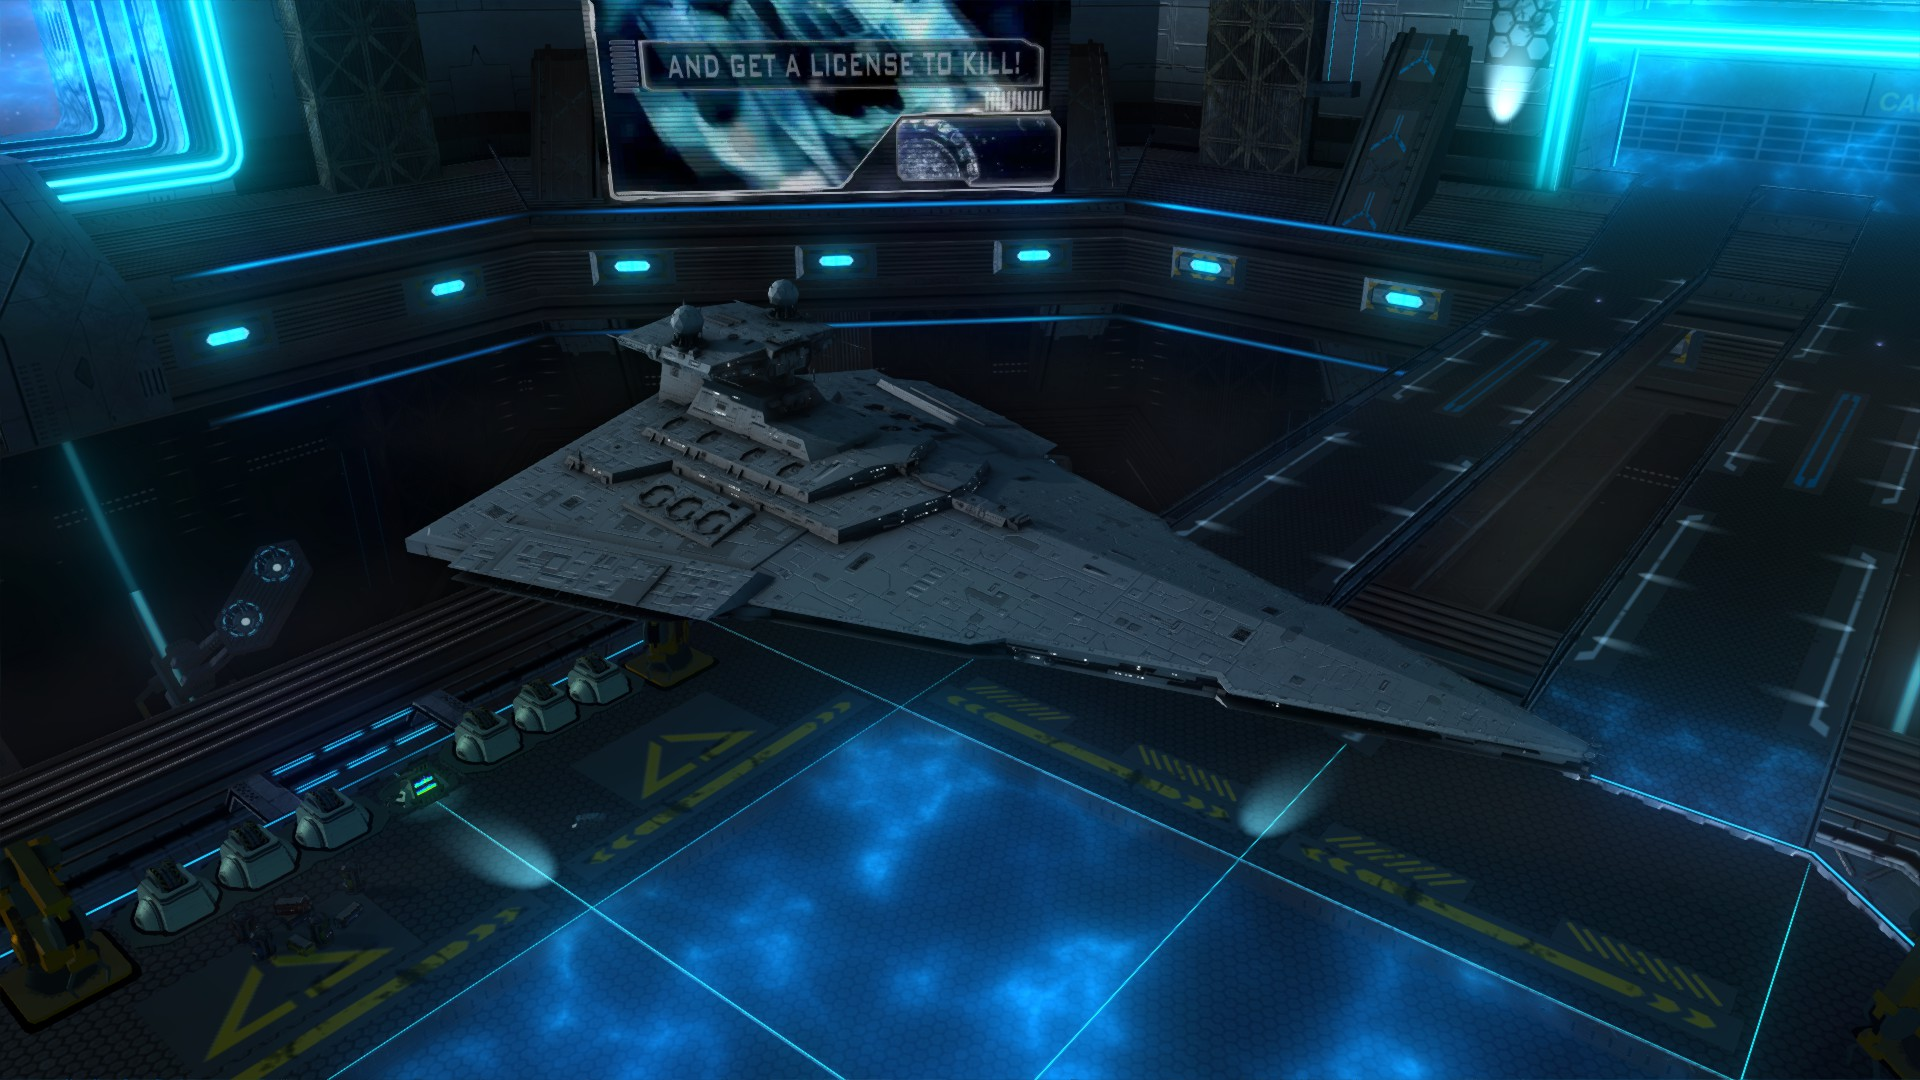 Image 3 Star Wars Warlords Of Gemini Dead Mod For Starpoint